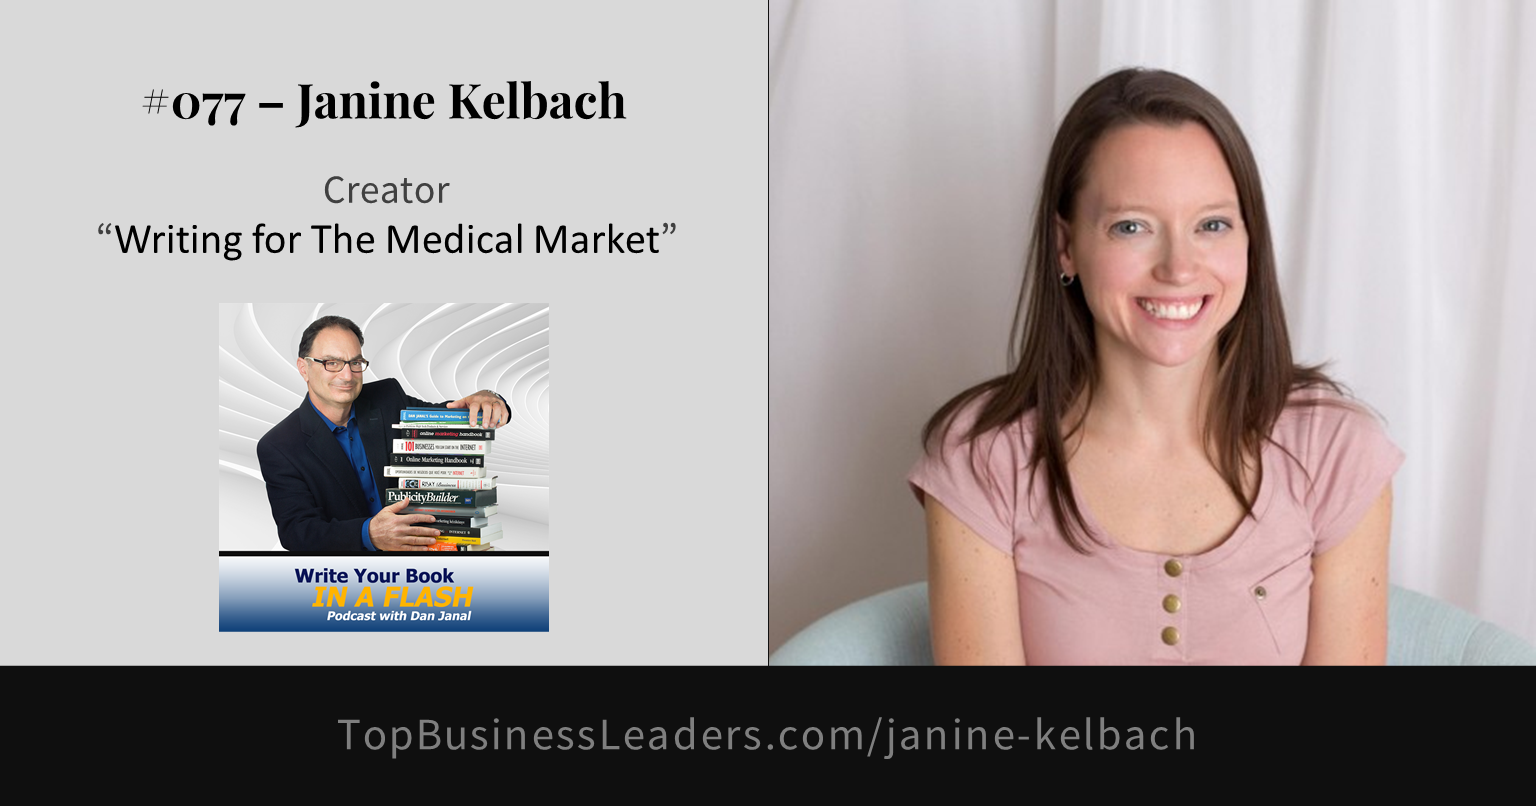 janine-kelbach-topic-writing-for-the-medical-market